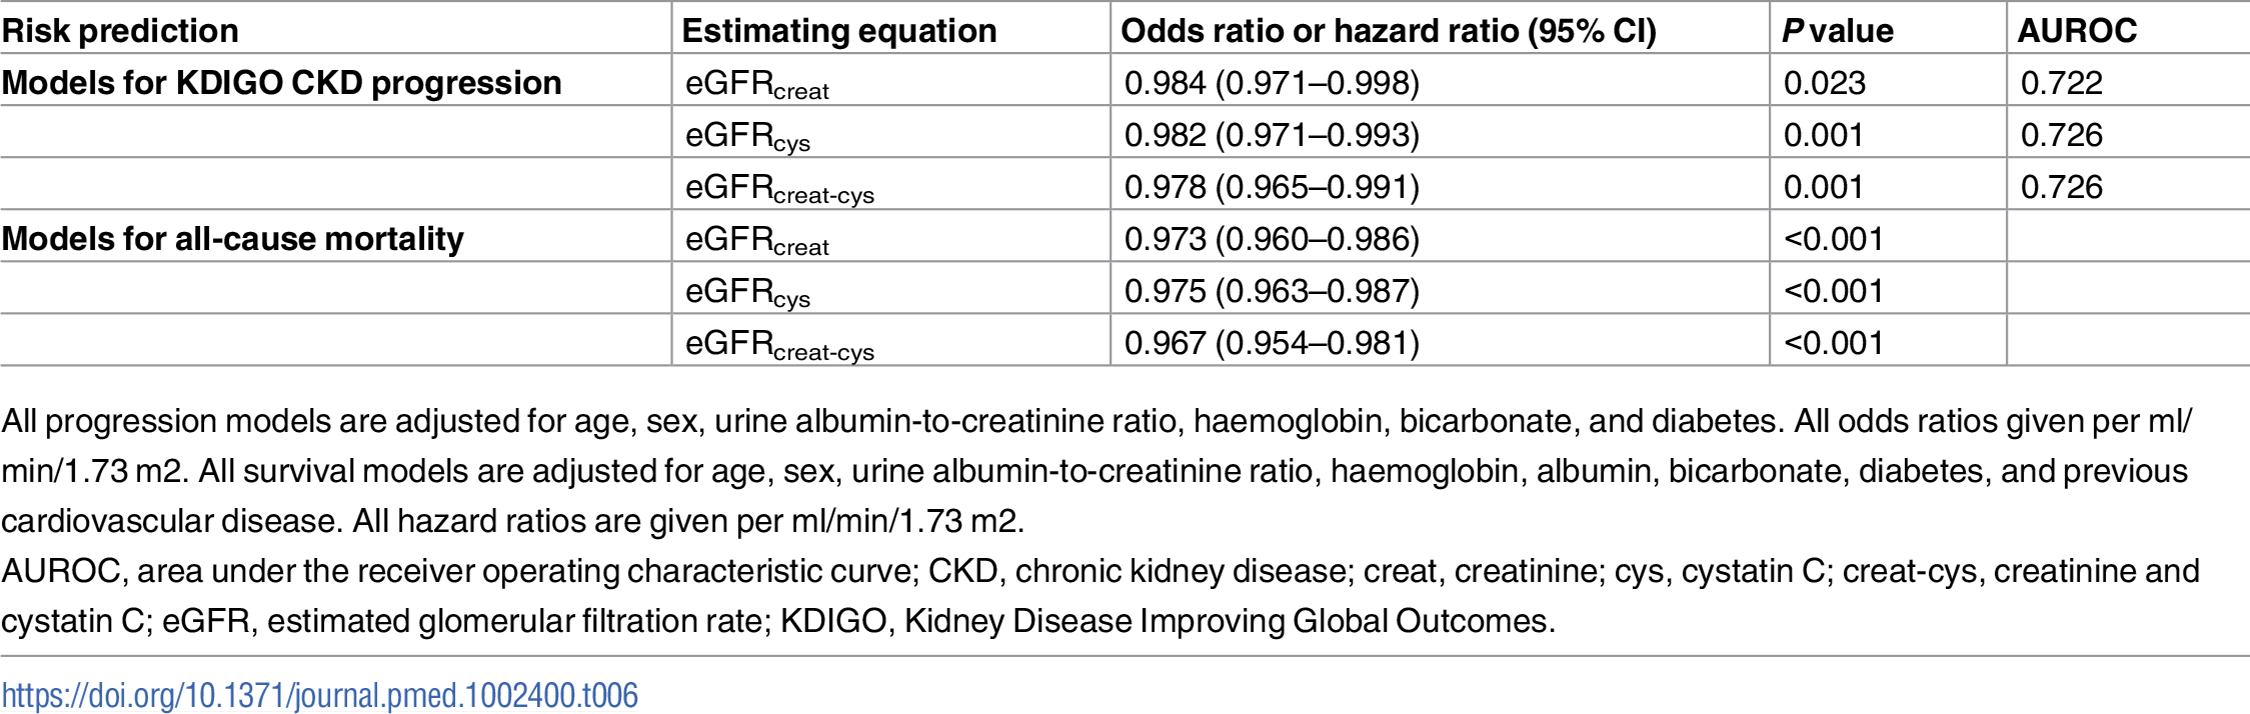 Risk prediction models for CKD progression in 999 participants and all-cause mortality in 1,732 participants using different estimating equations for eGFR.